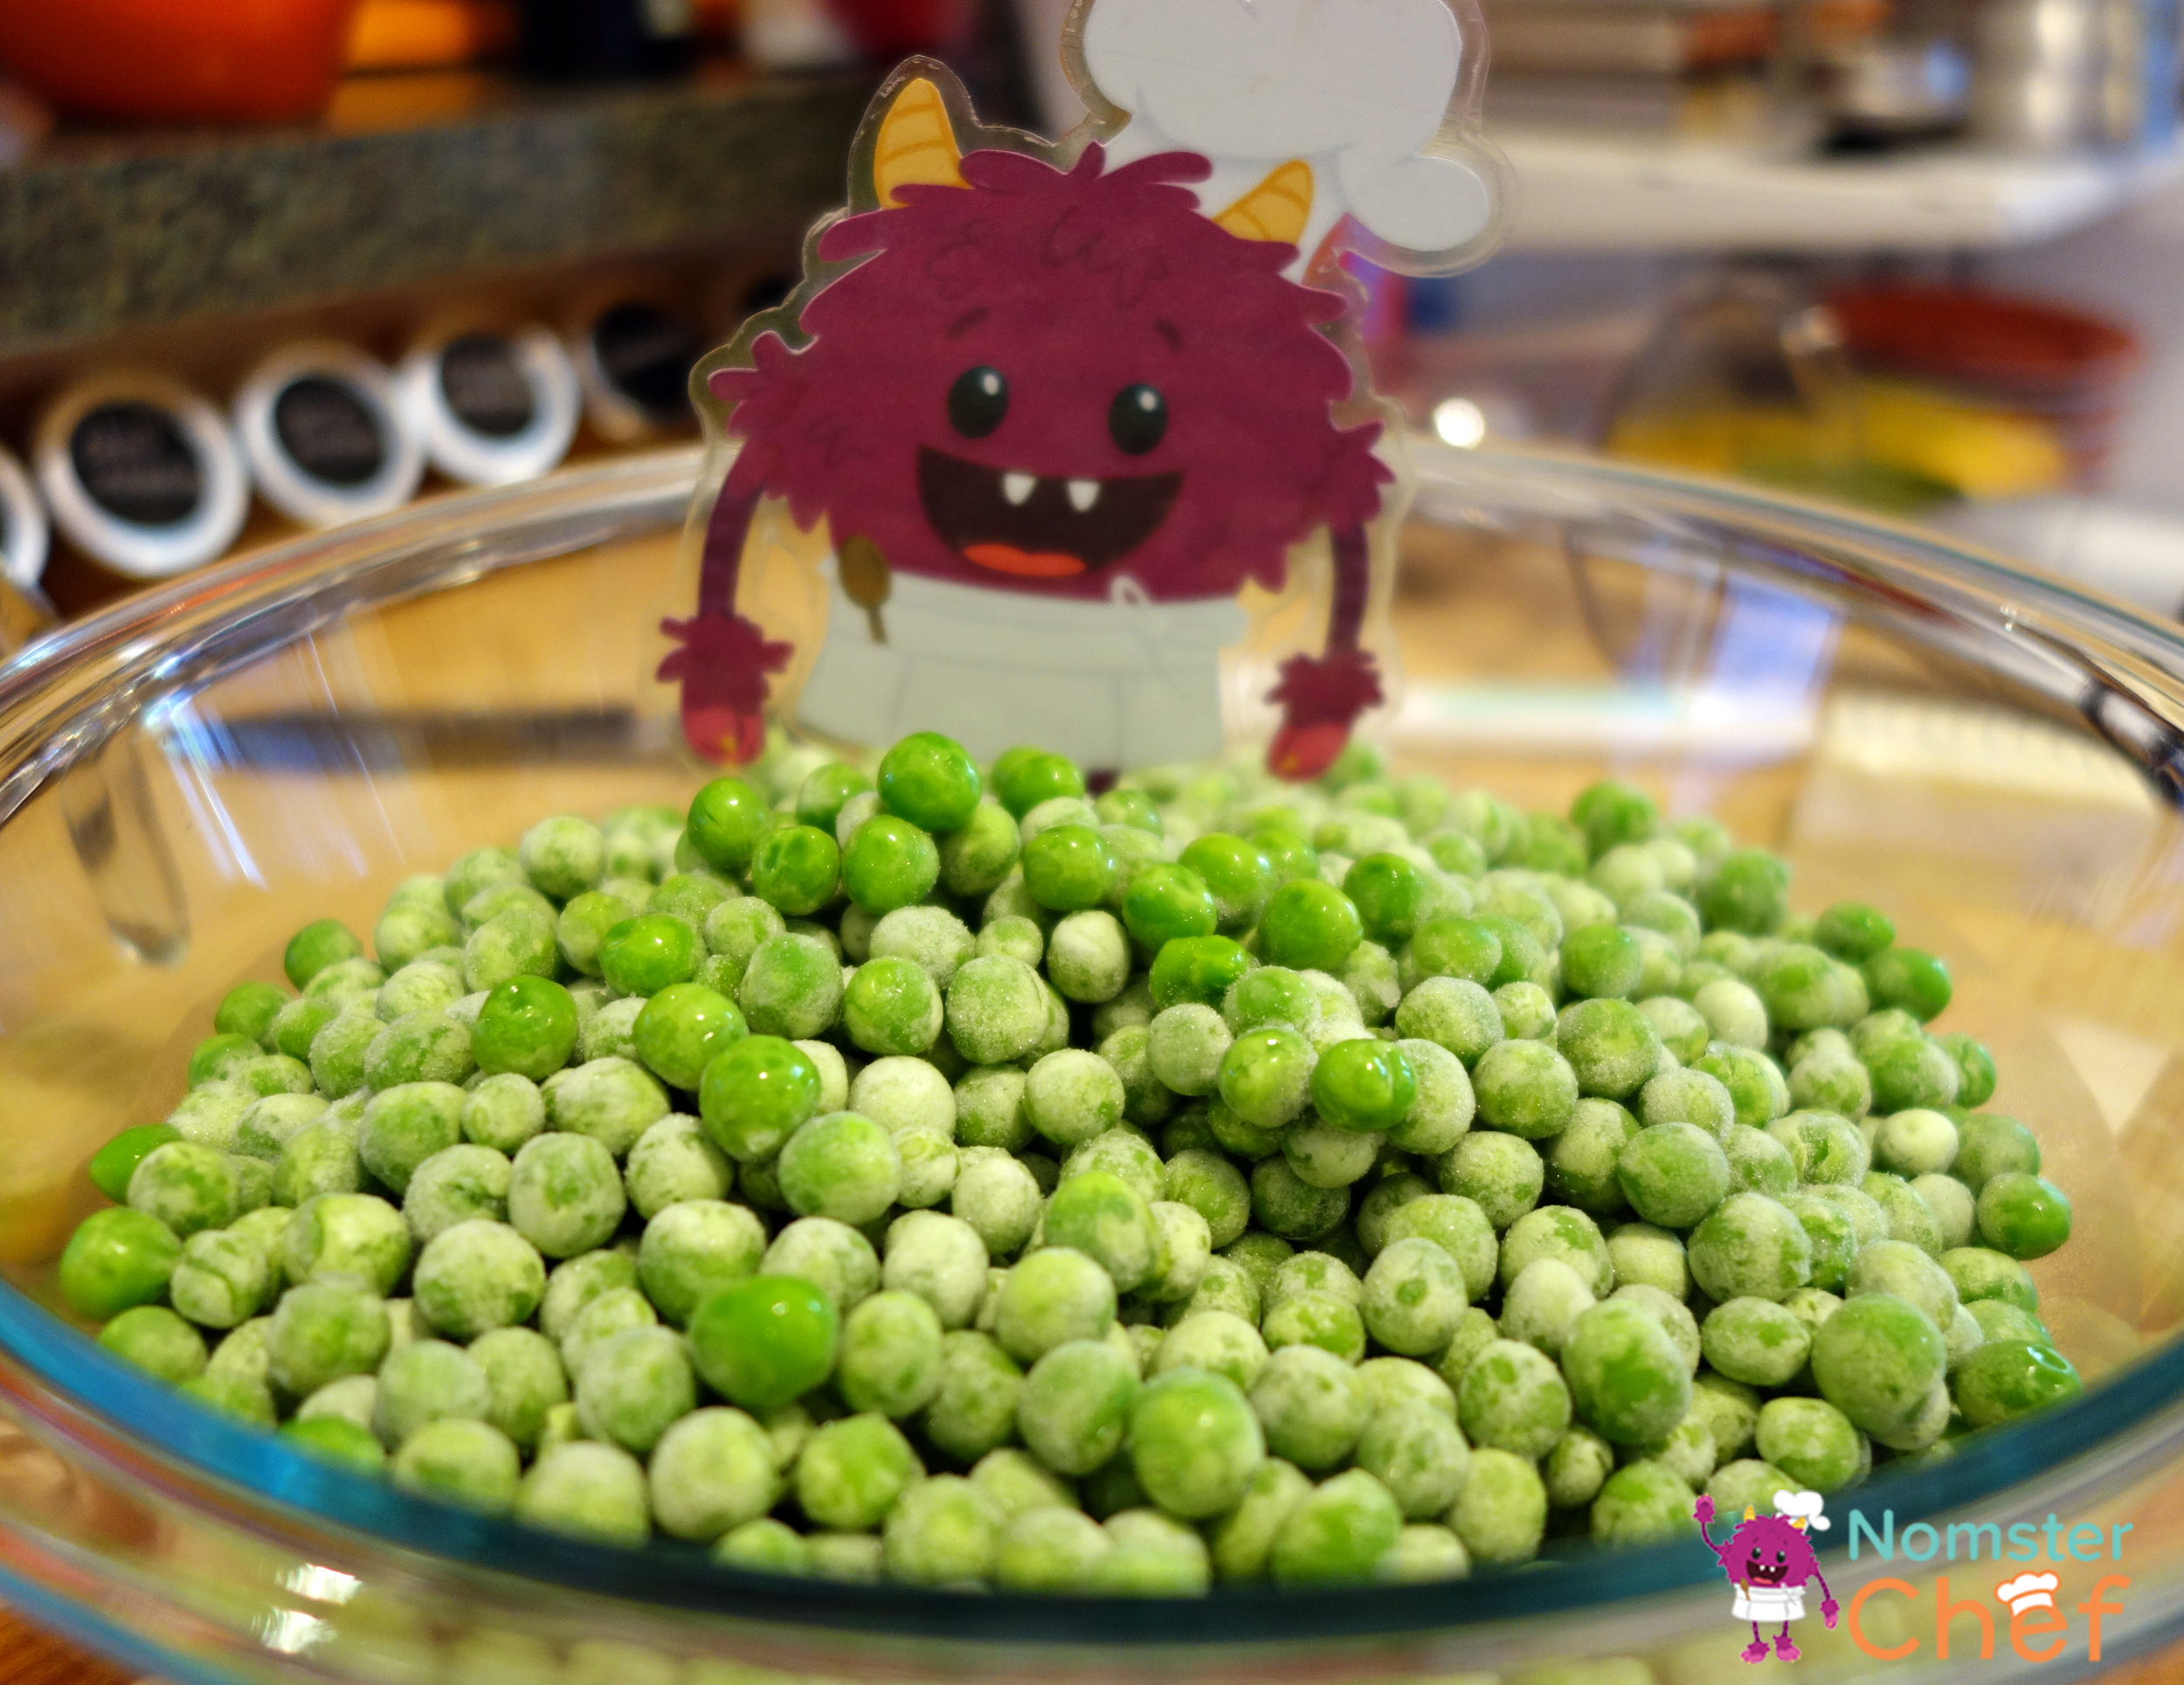 Nomster in bowl of peas- minty gazpacho soup-Nomster Chef